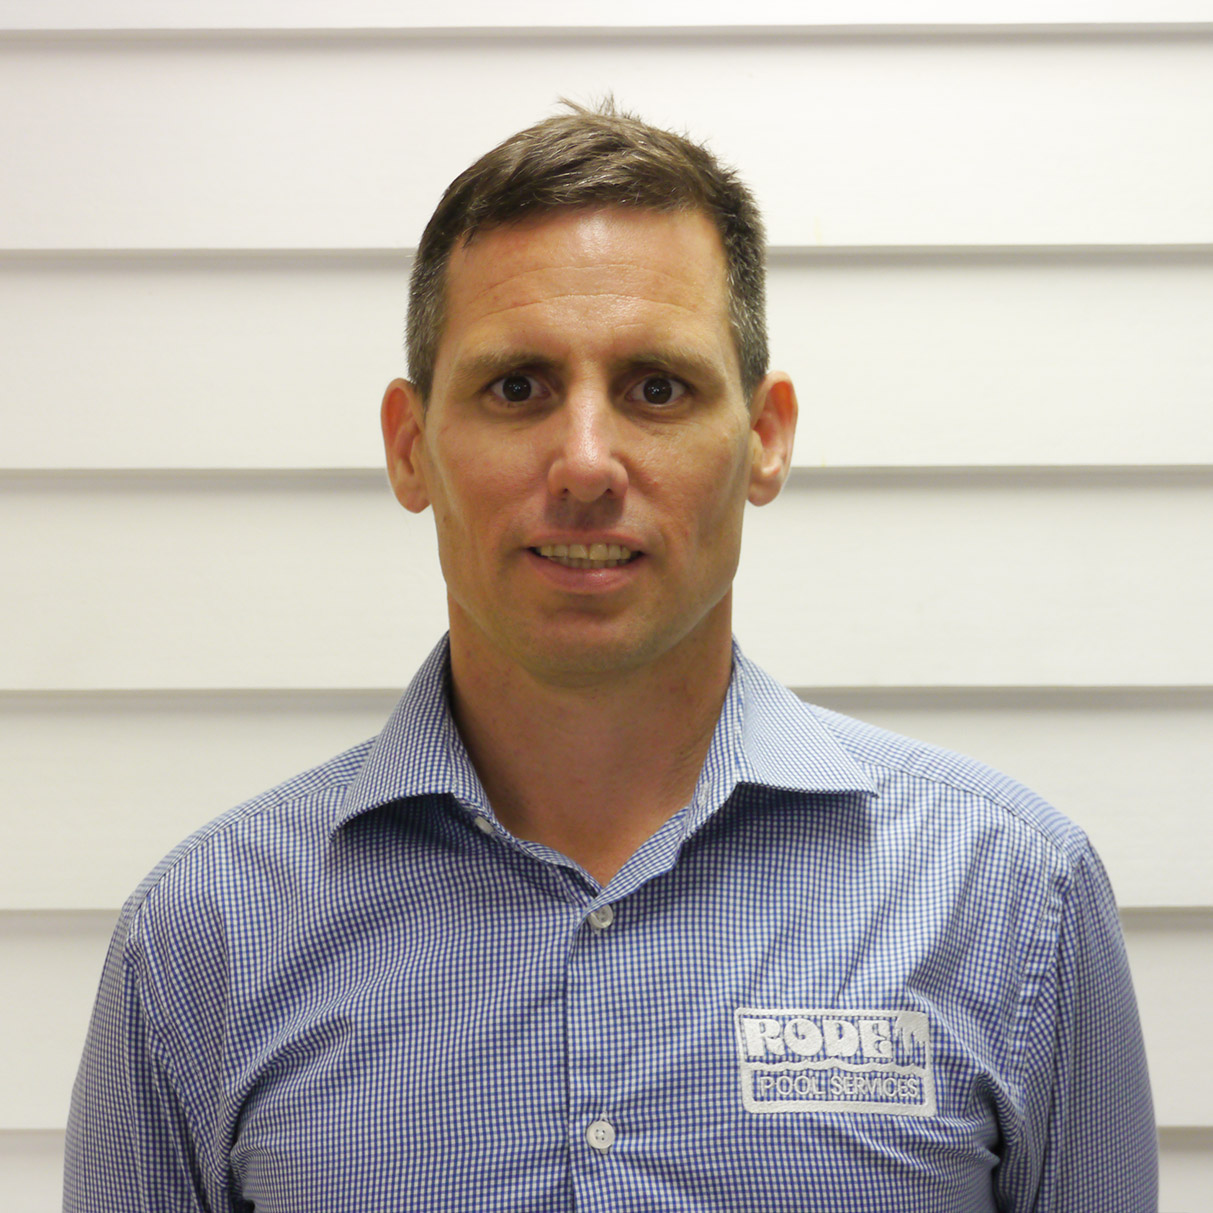 Steve - Operations Manager